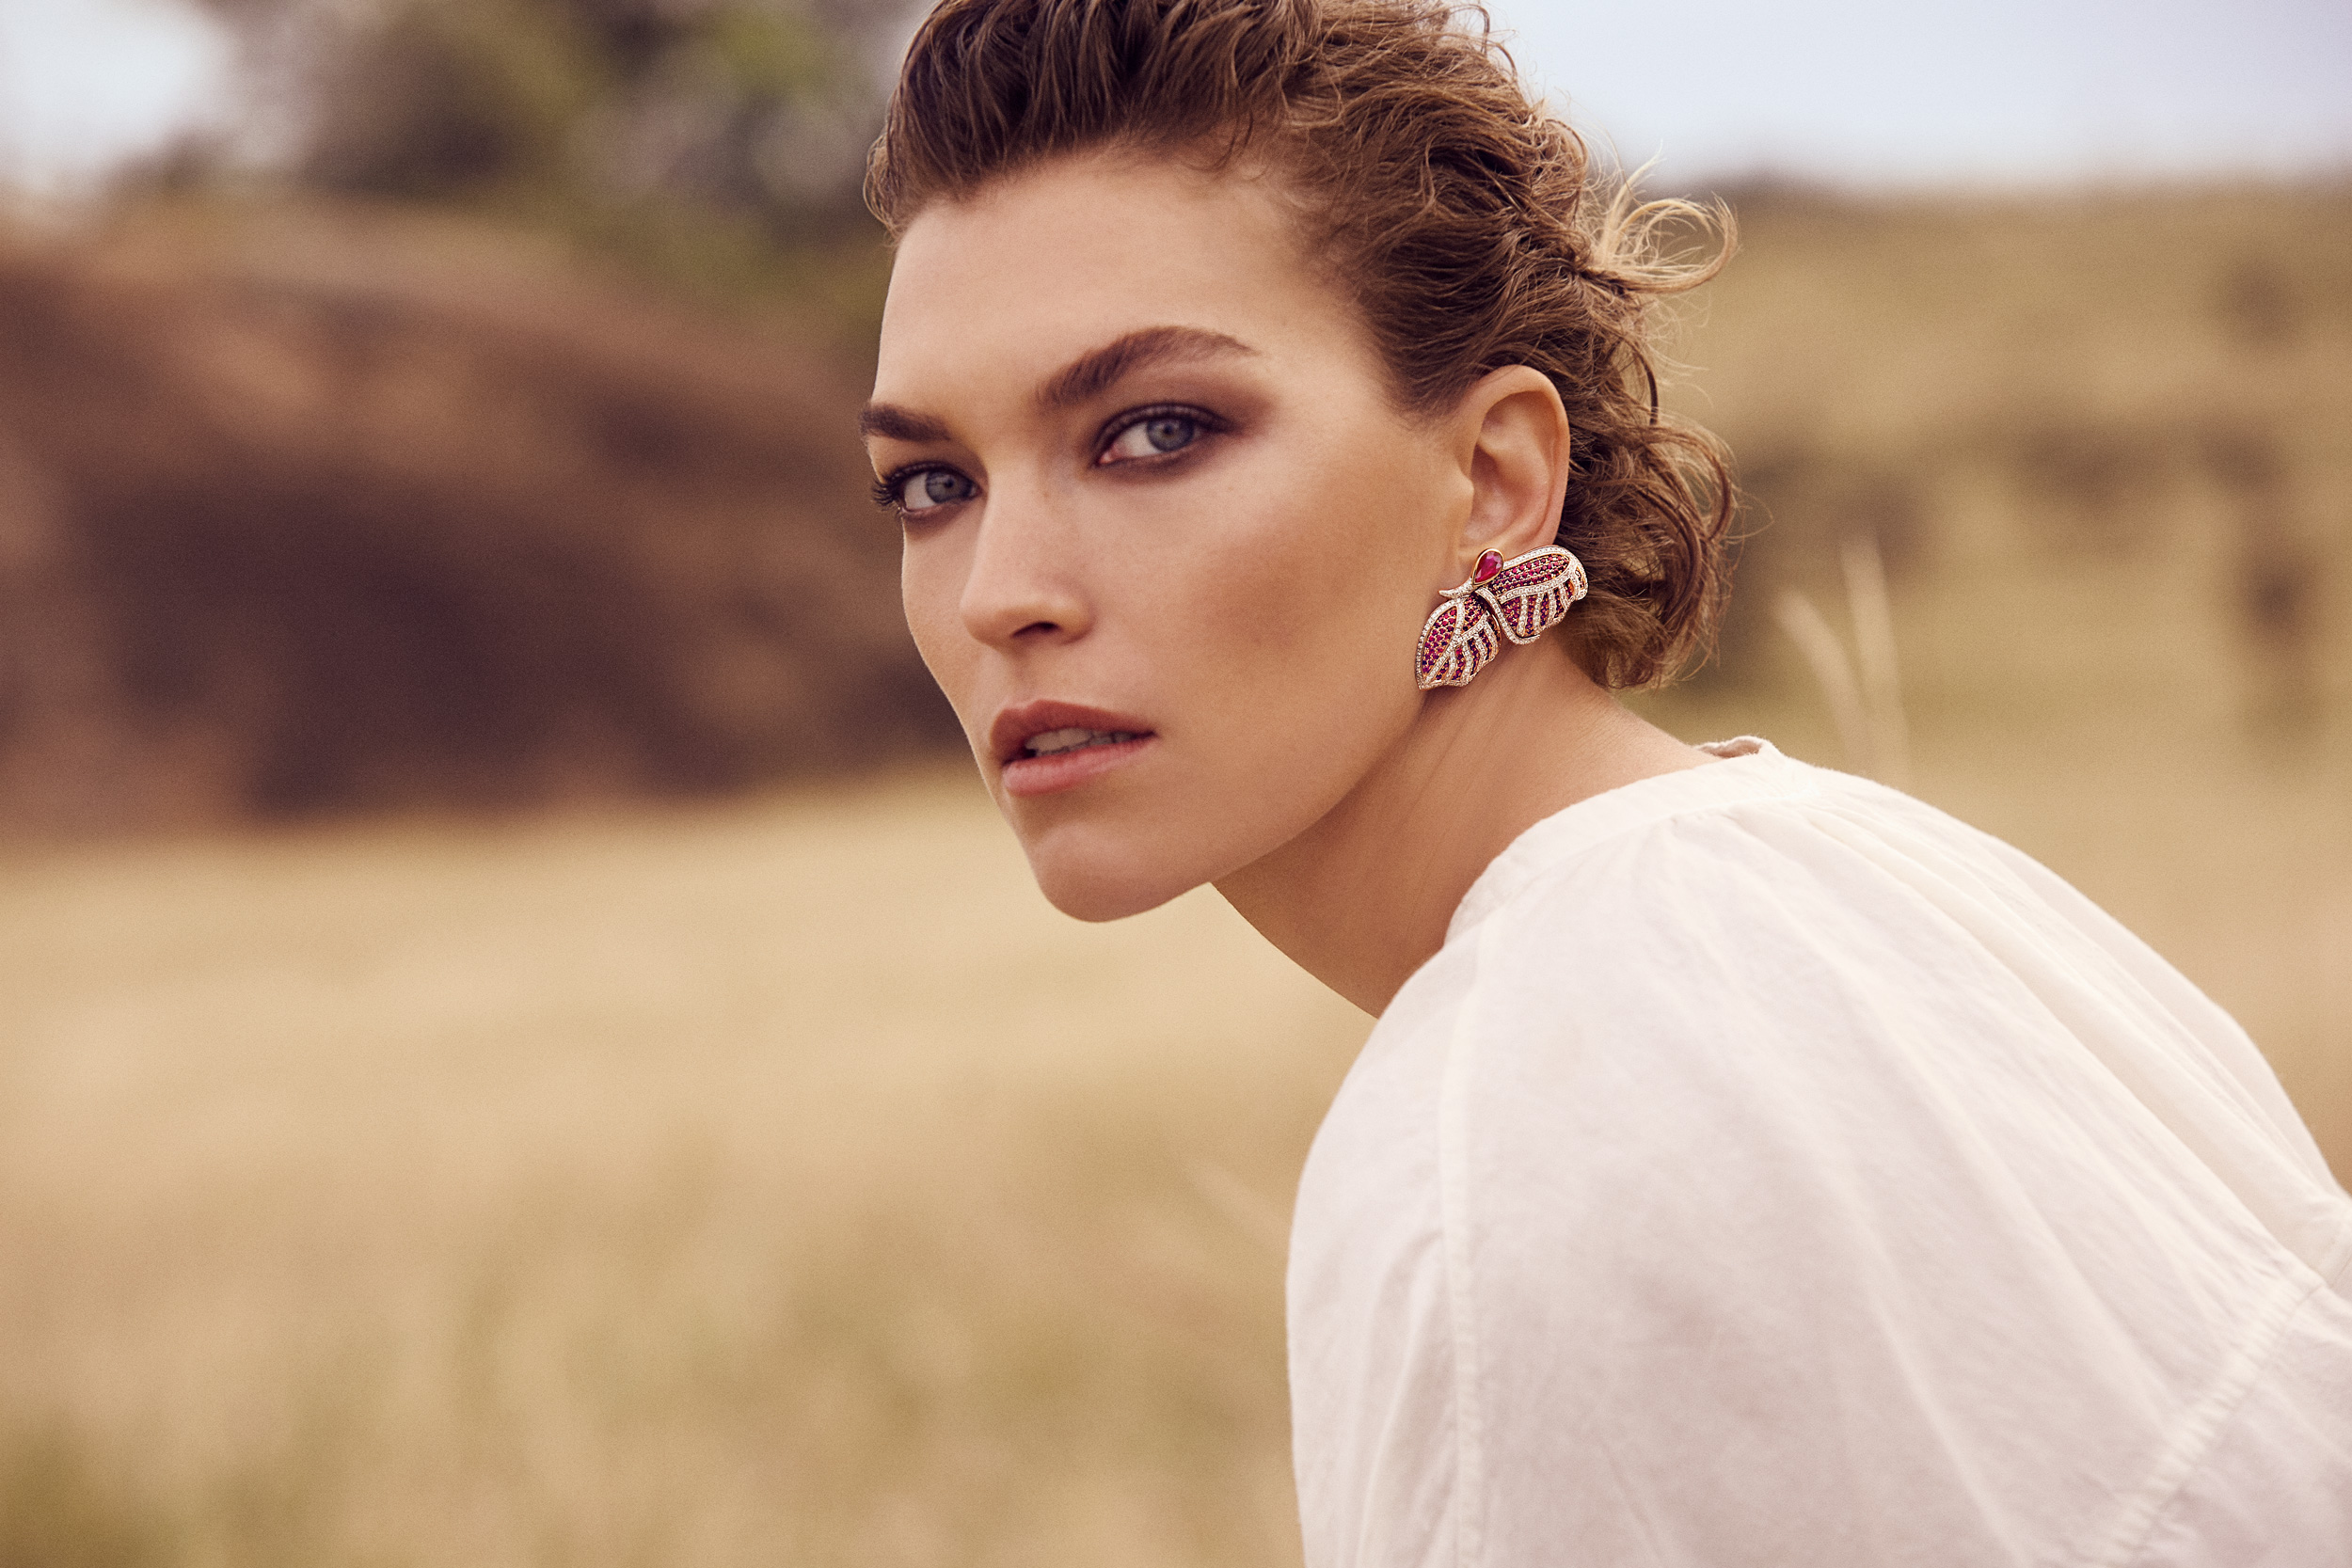 Image Credits: 'Walk For Giants', photography by Francesco Carrozzini, creative direction by Riccardo Ruini, shot on location at Enasoit Game Sanctuary, featuring Fehmida Lakhany X Gemfields Butterfly Earrings